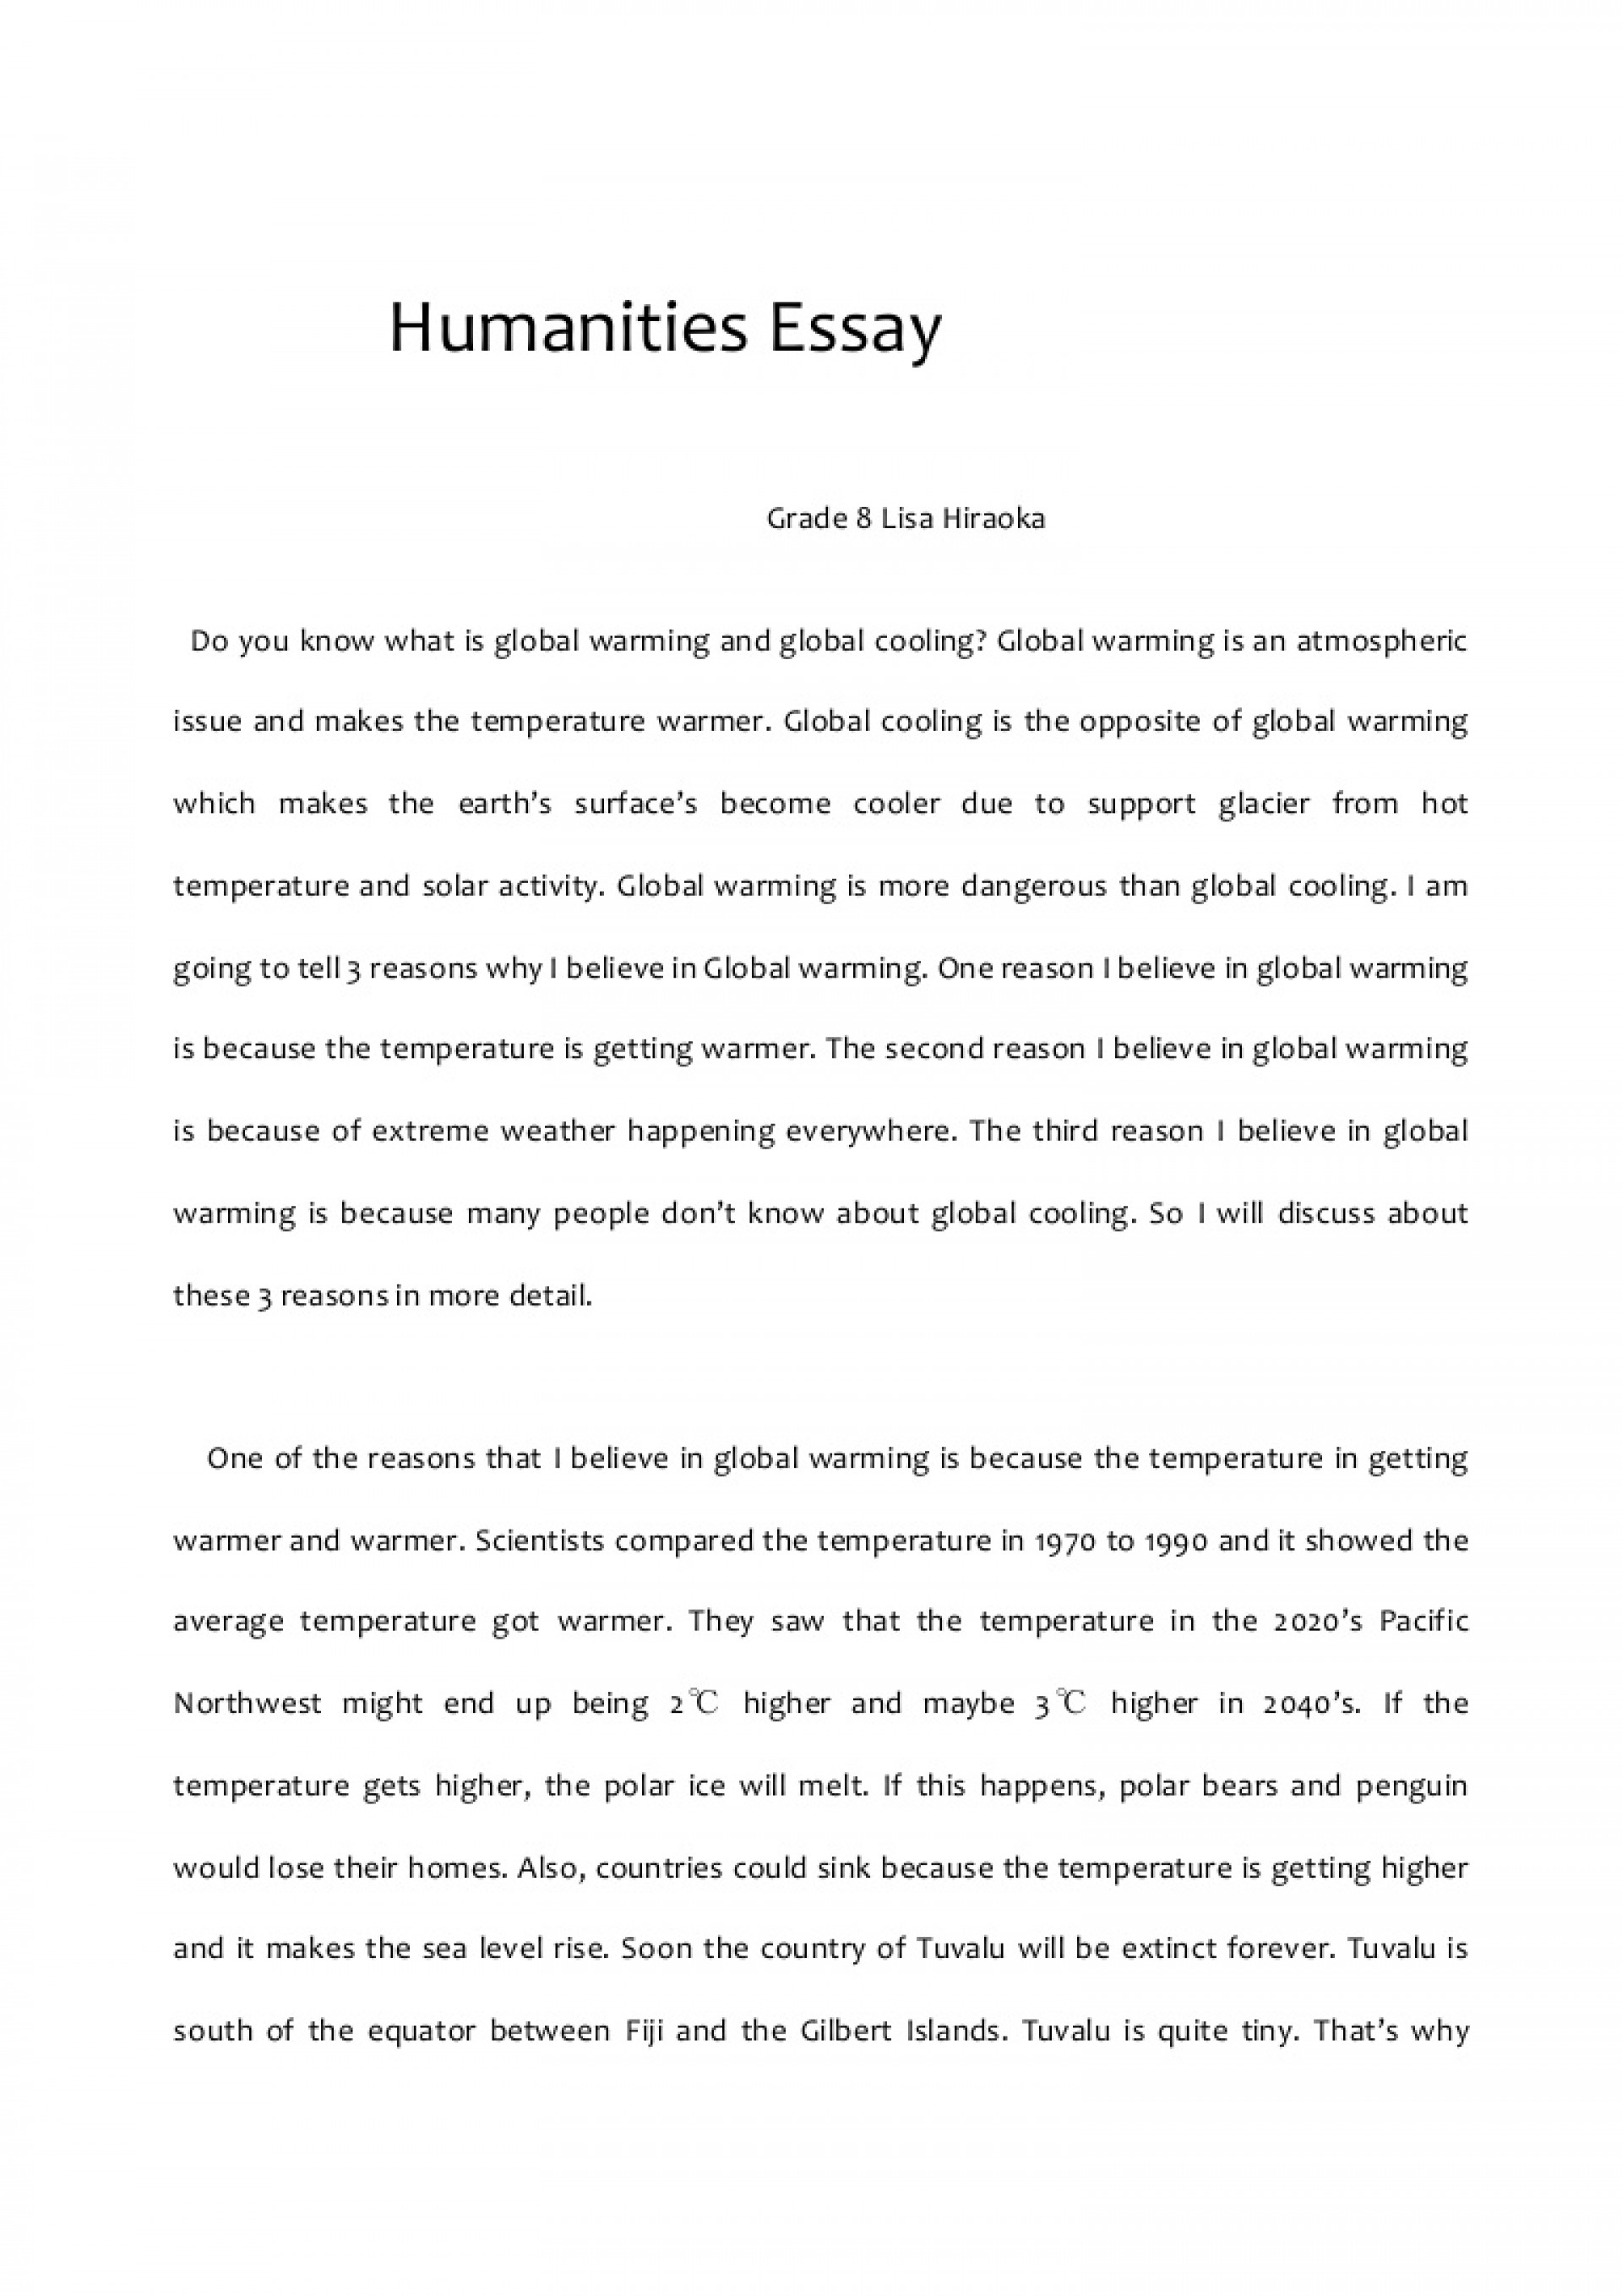 012 This I Believe Essay Topics Example Best Narrative Samples Humanitiesessay Phpapp02 Thumbn Good Fearsome Prompt Easy Funny 1920